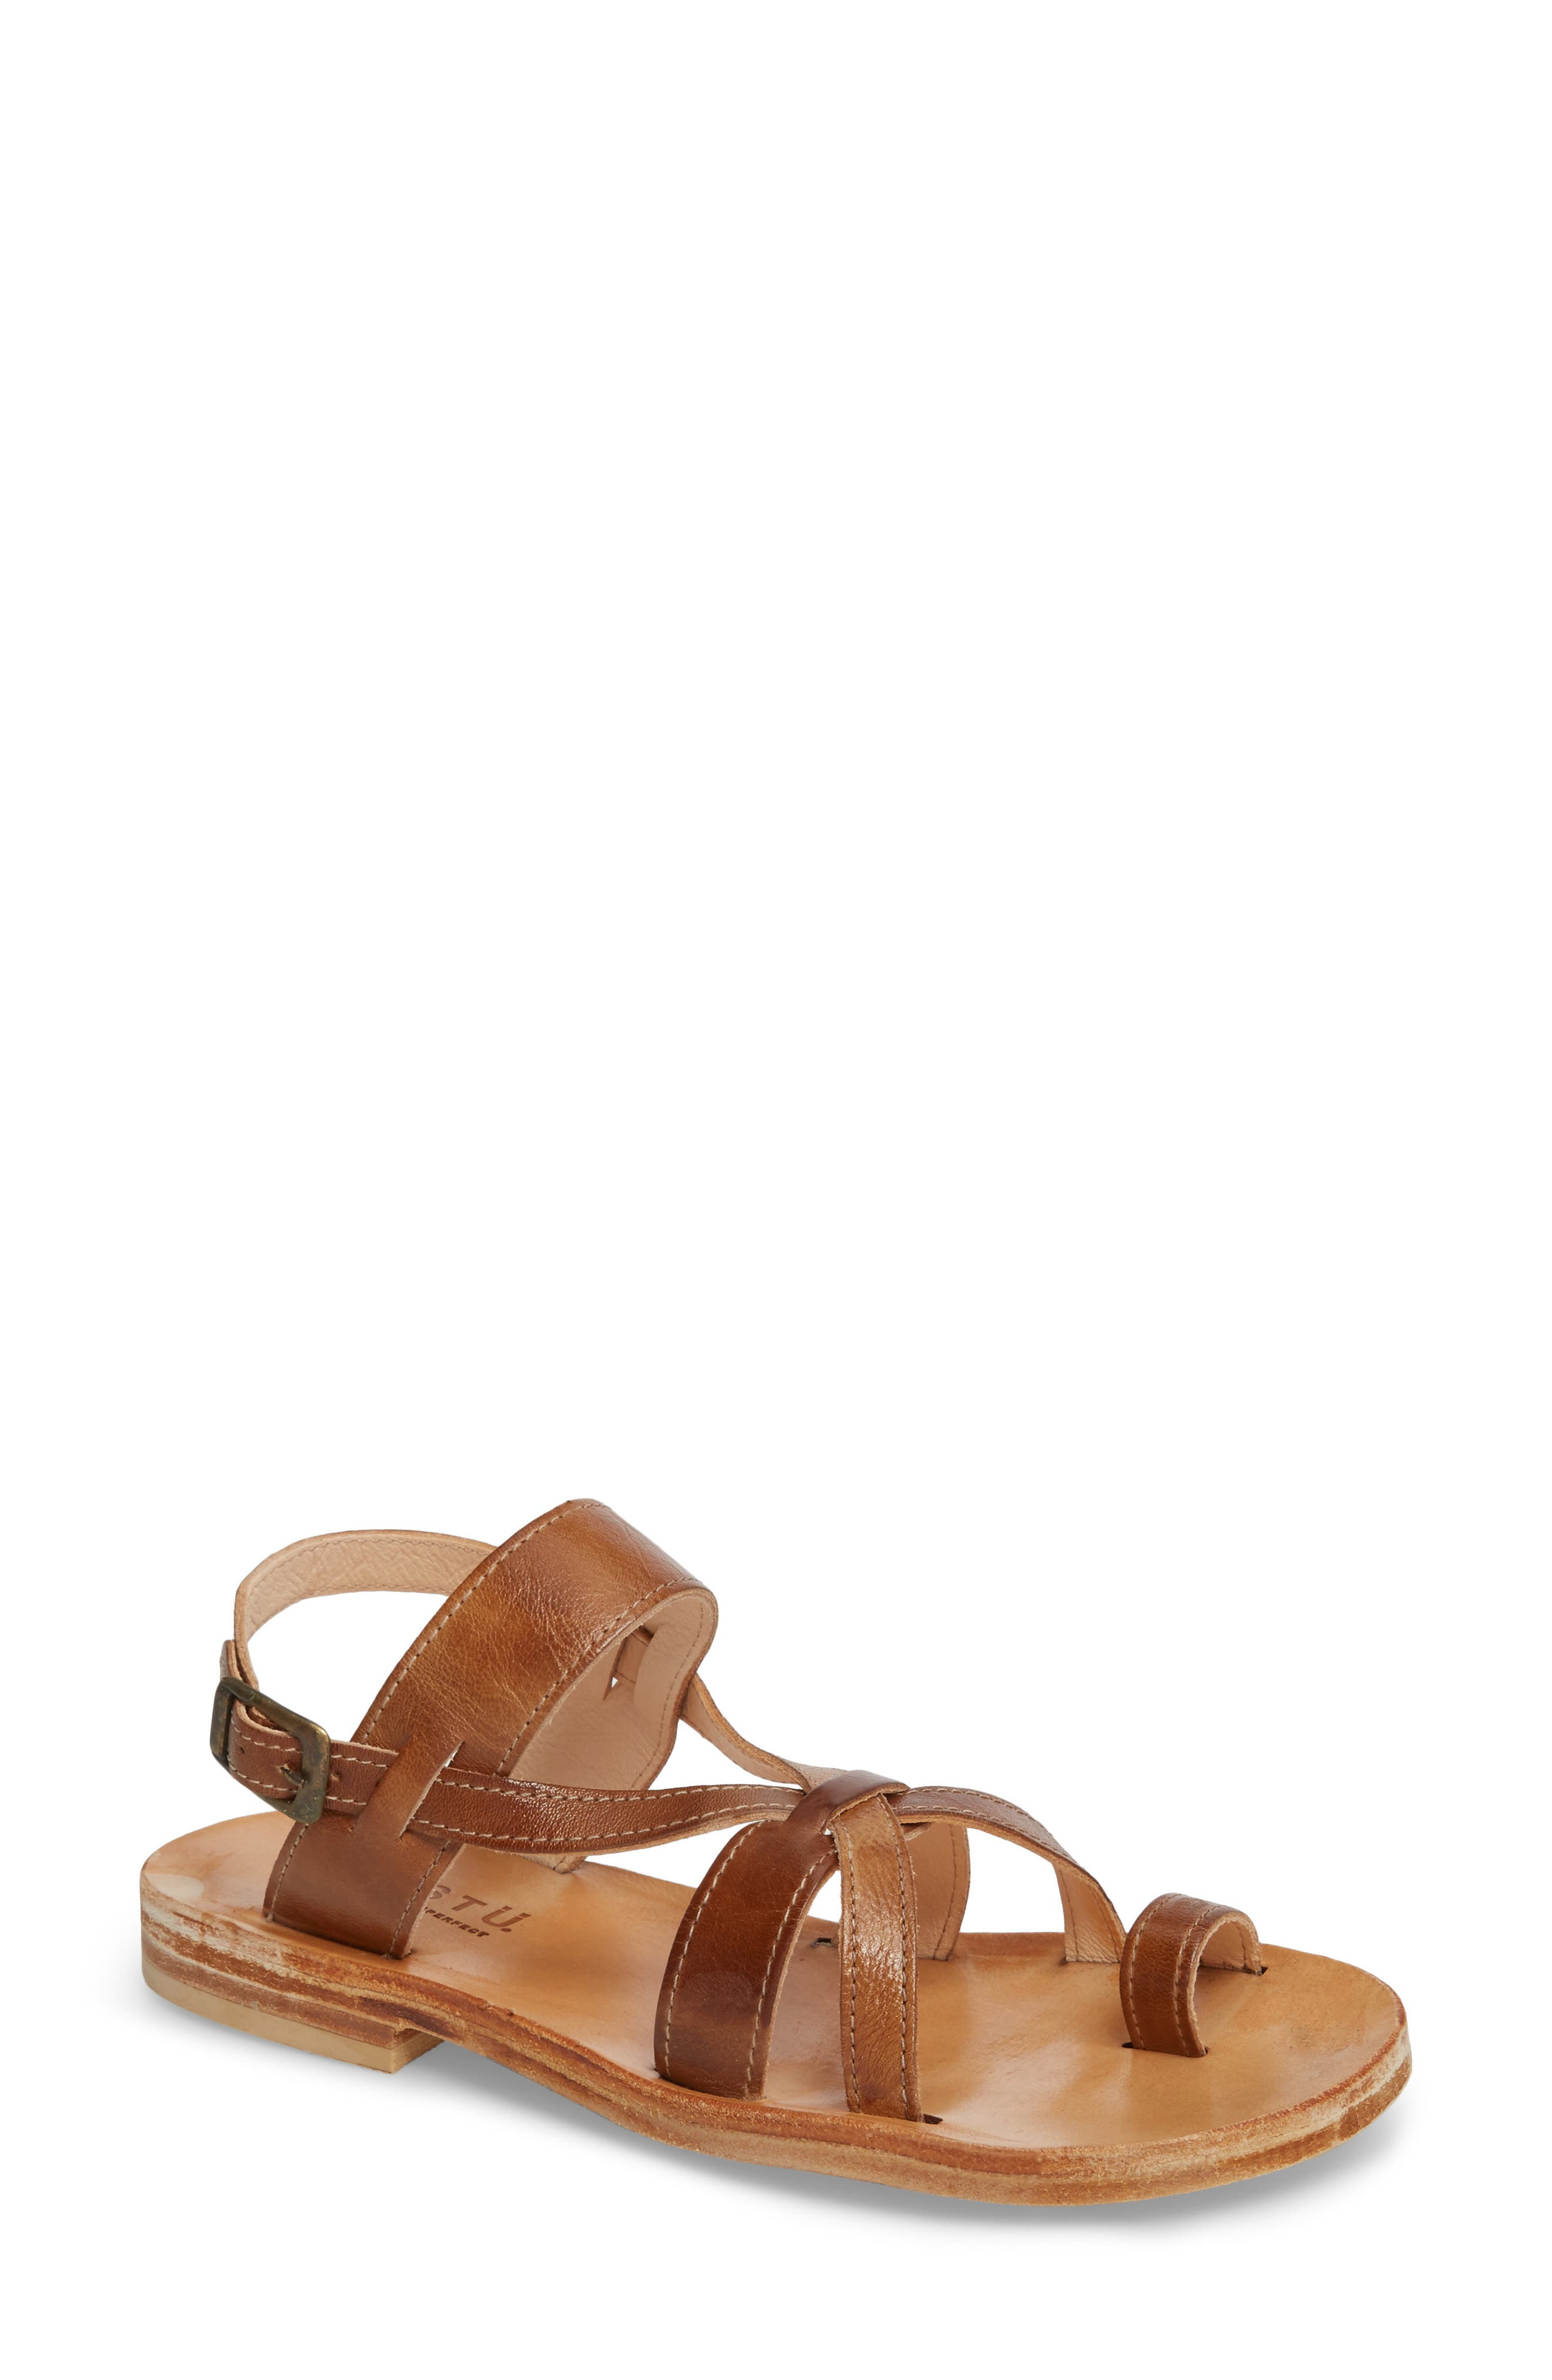 Manati Sandal,                         Main,                         color, 230